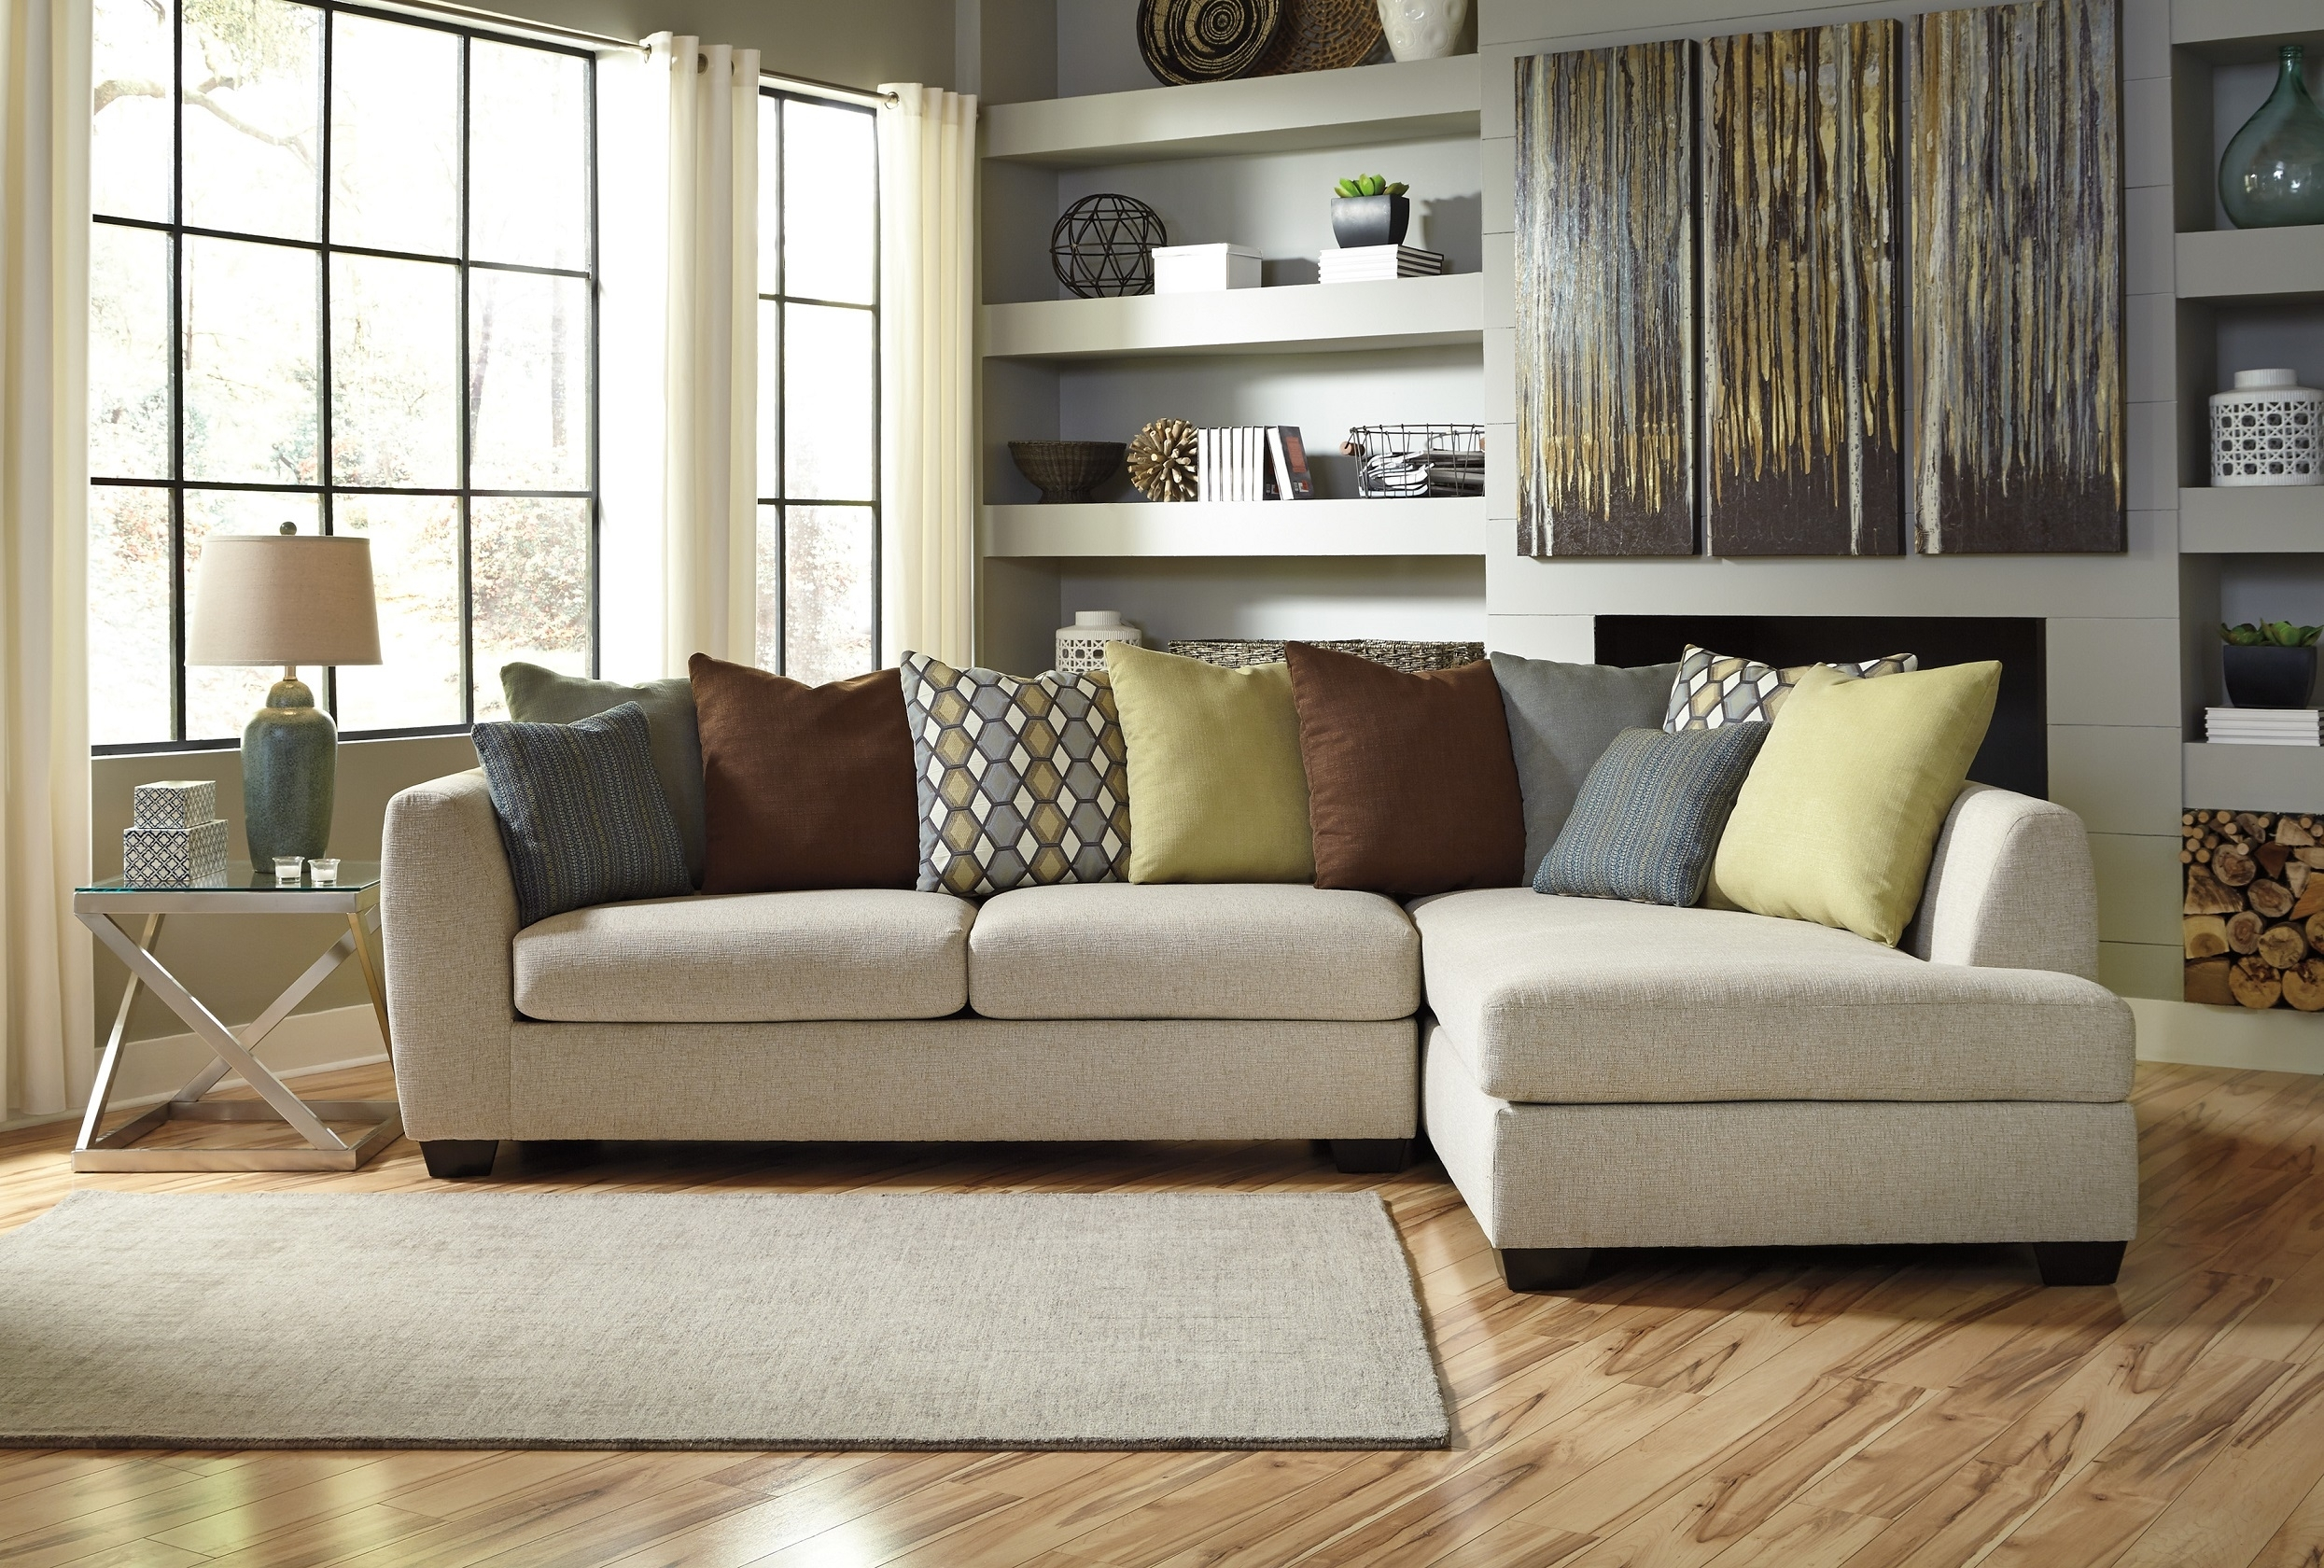 Amusing Gray Sectional Sofa Ashley Furniture 51 In Lime Green inside Sectional Sofas at Ashley (Image 5 of 15)